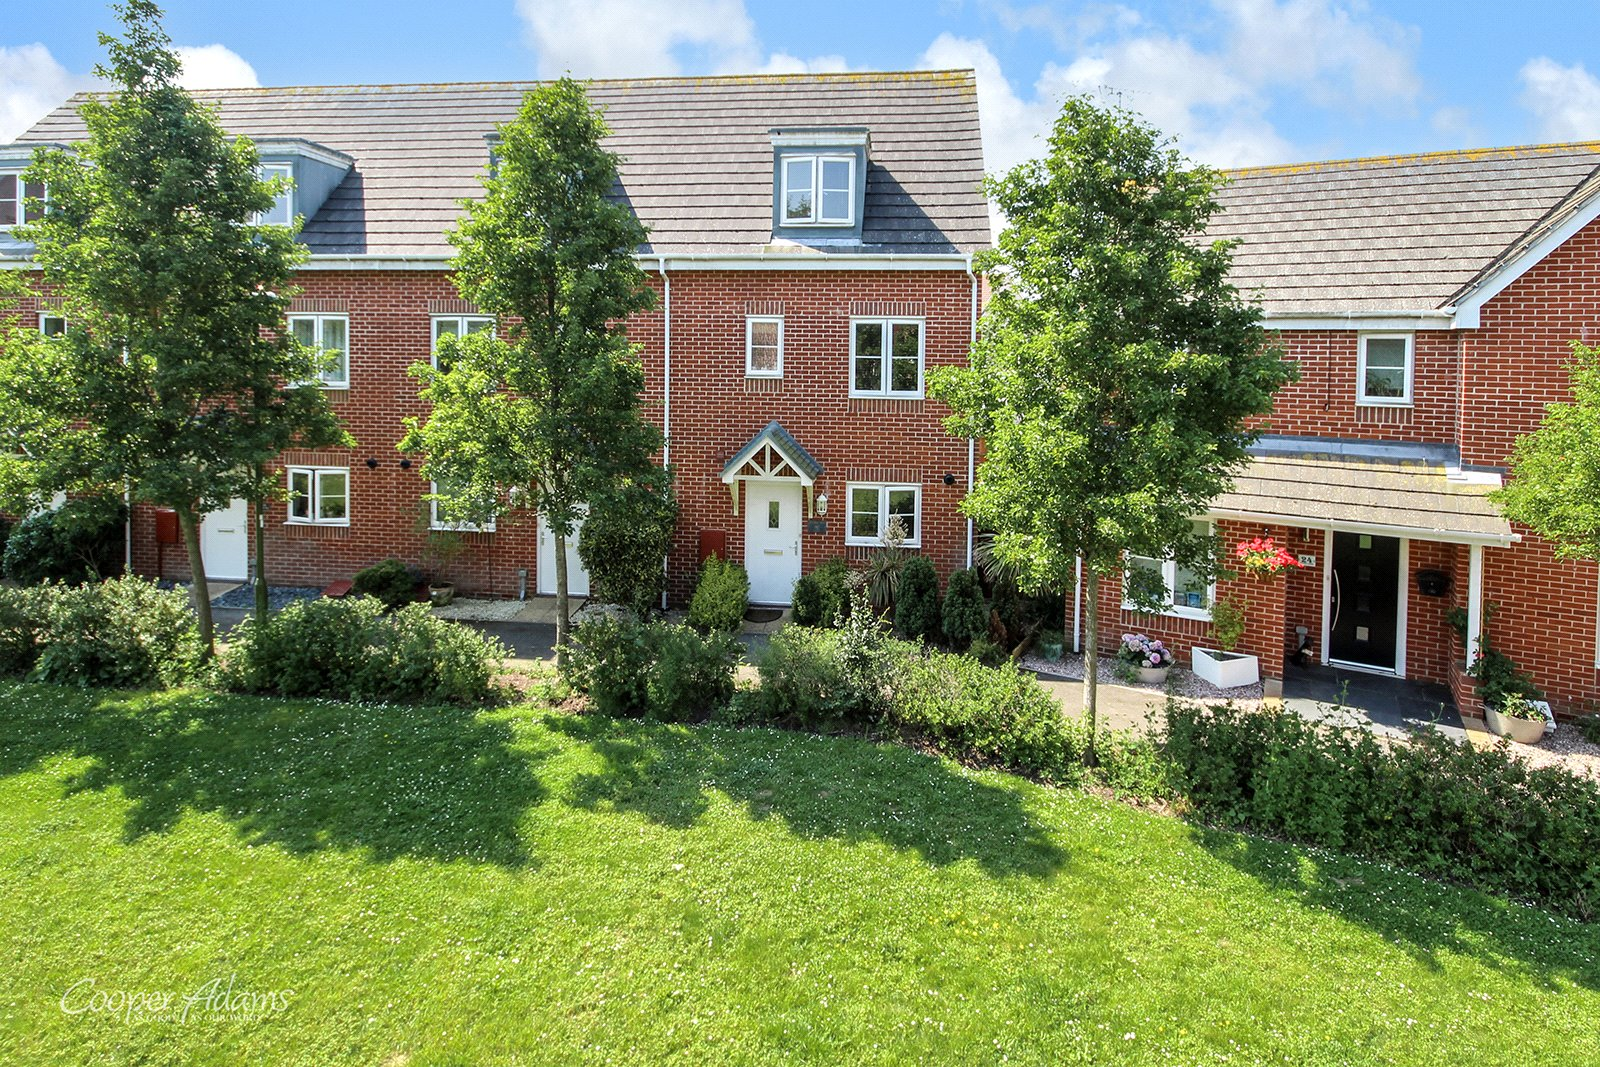 3 bed house to rent in Cheal Way, Littlehampton, BN17